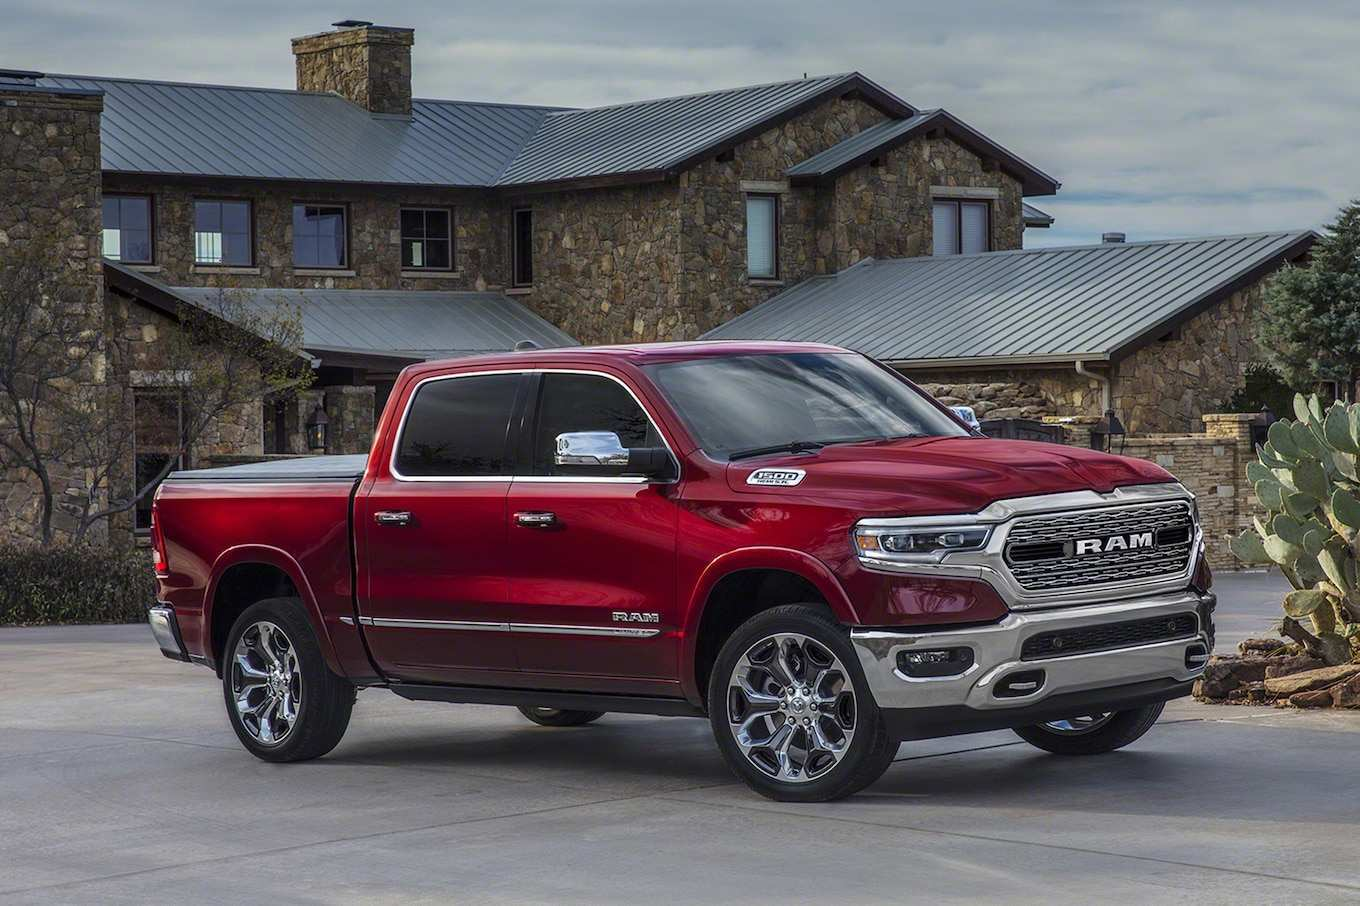 73 New 2019 Dodge Ram 1500 Exterior and Interior by 2019 Dodge Ram 1500